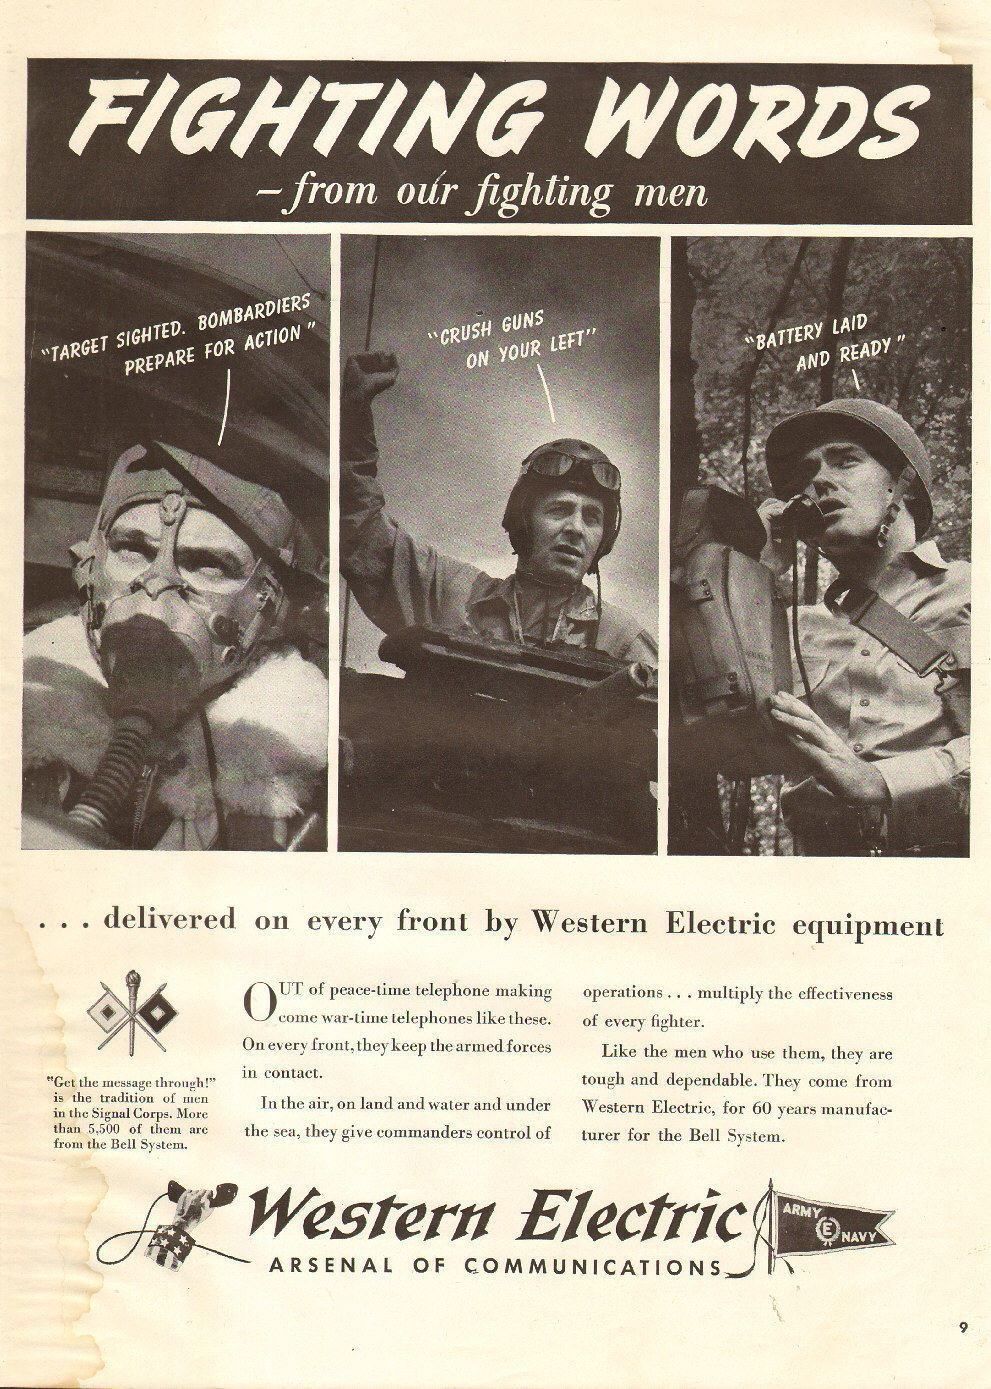 1942 WW2 Ad Western Electric Communications on The Front Radio 022016 | eBay